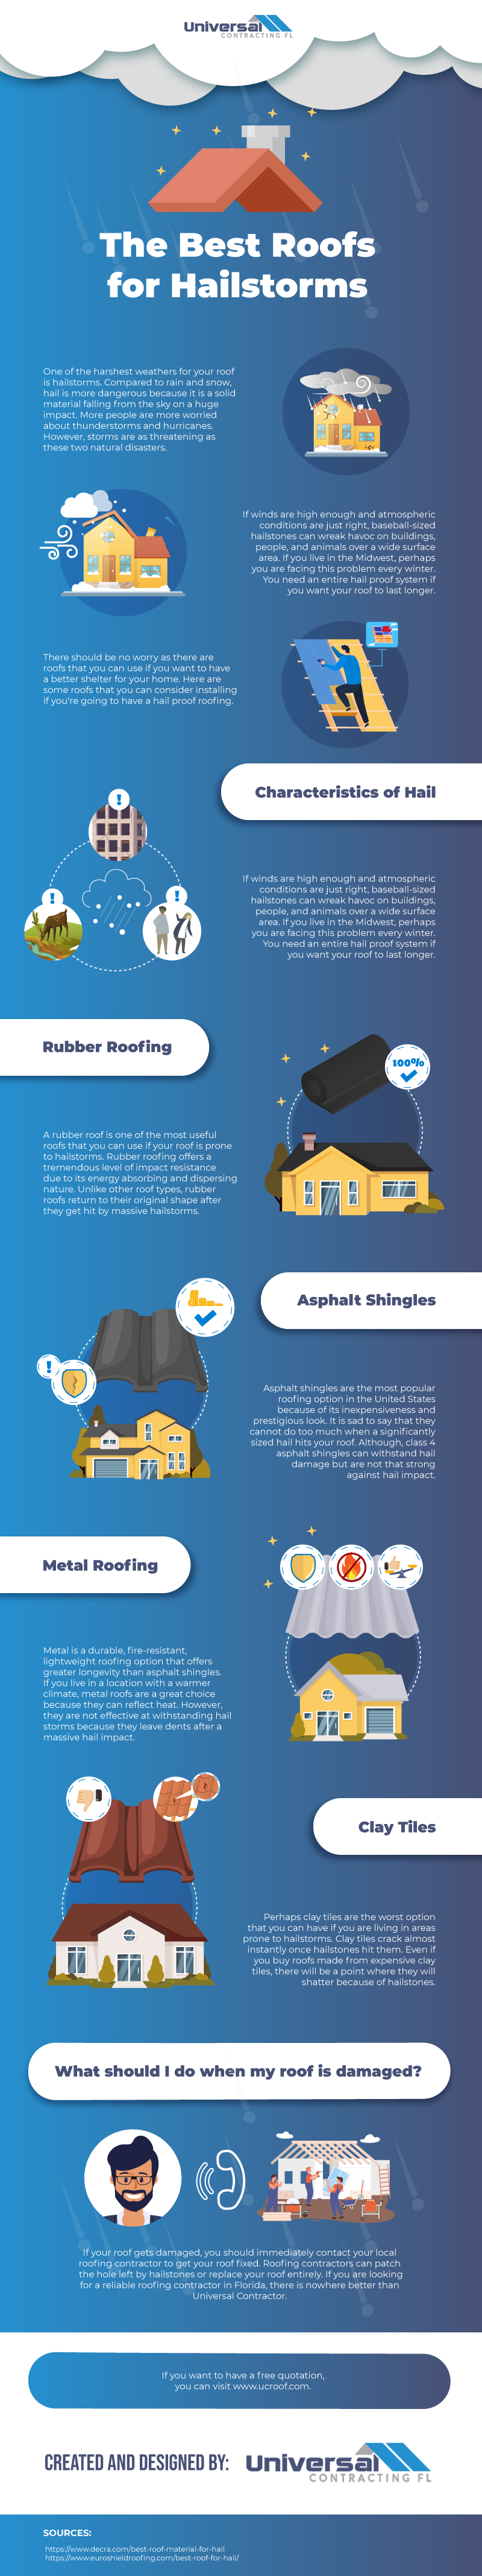 The best roofs for hailstorms